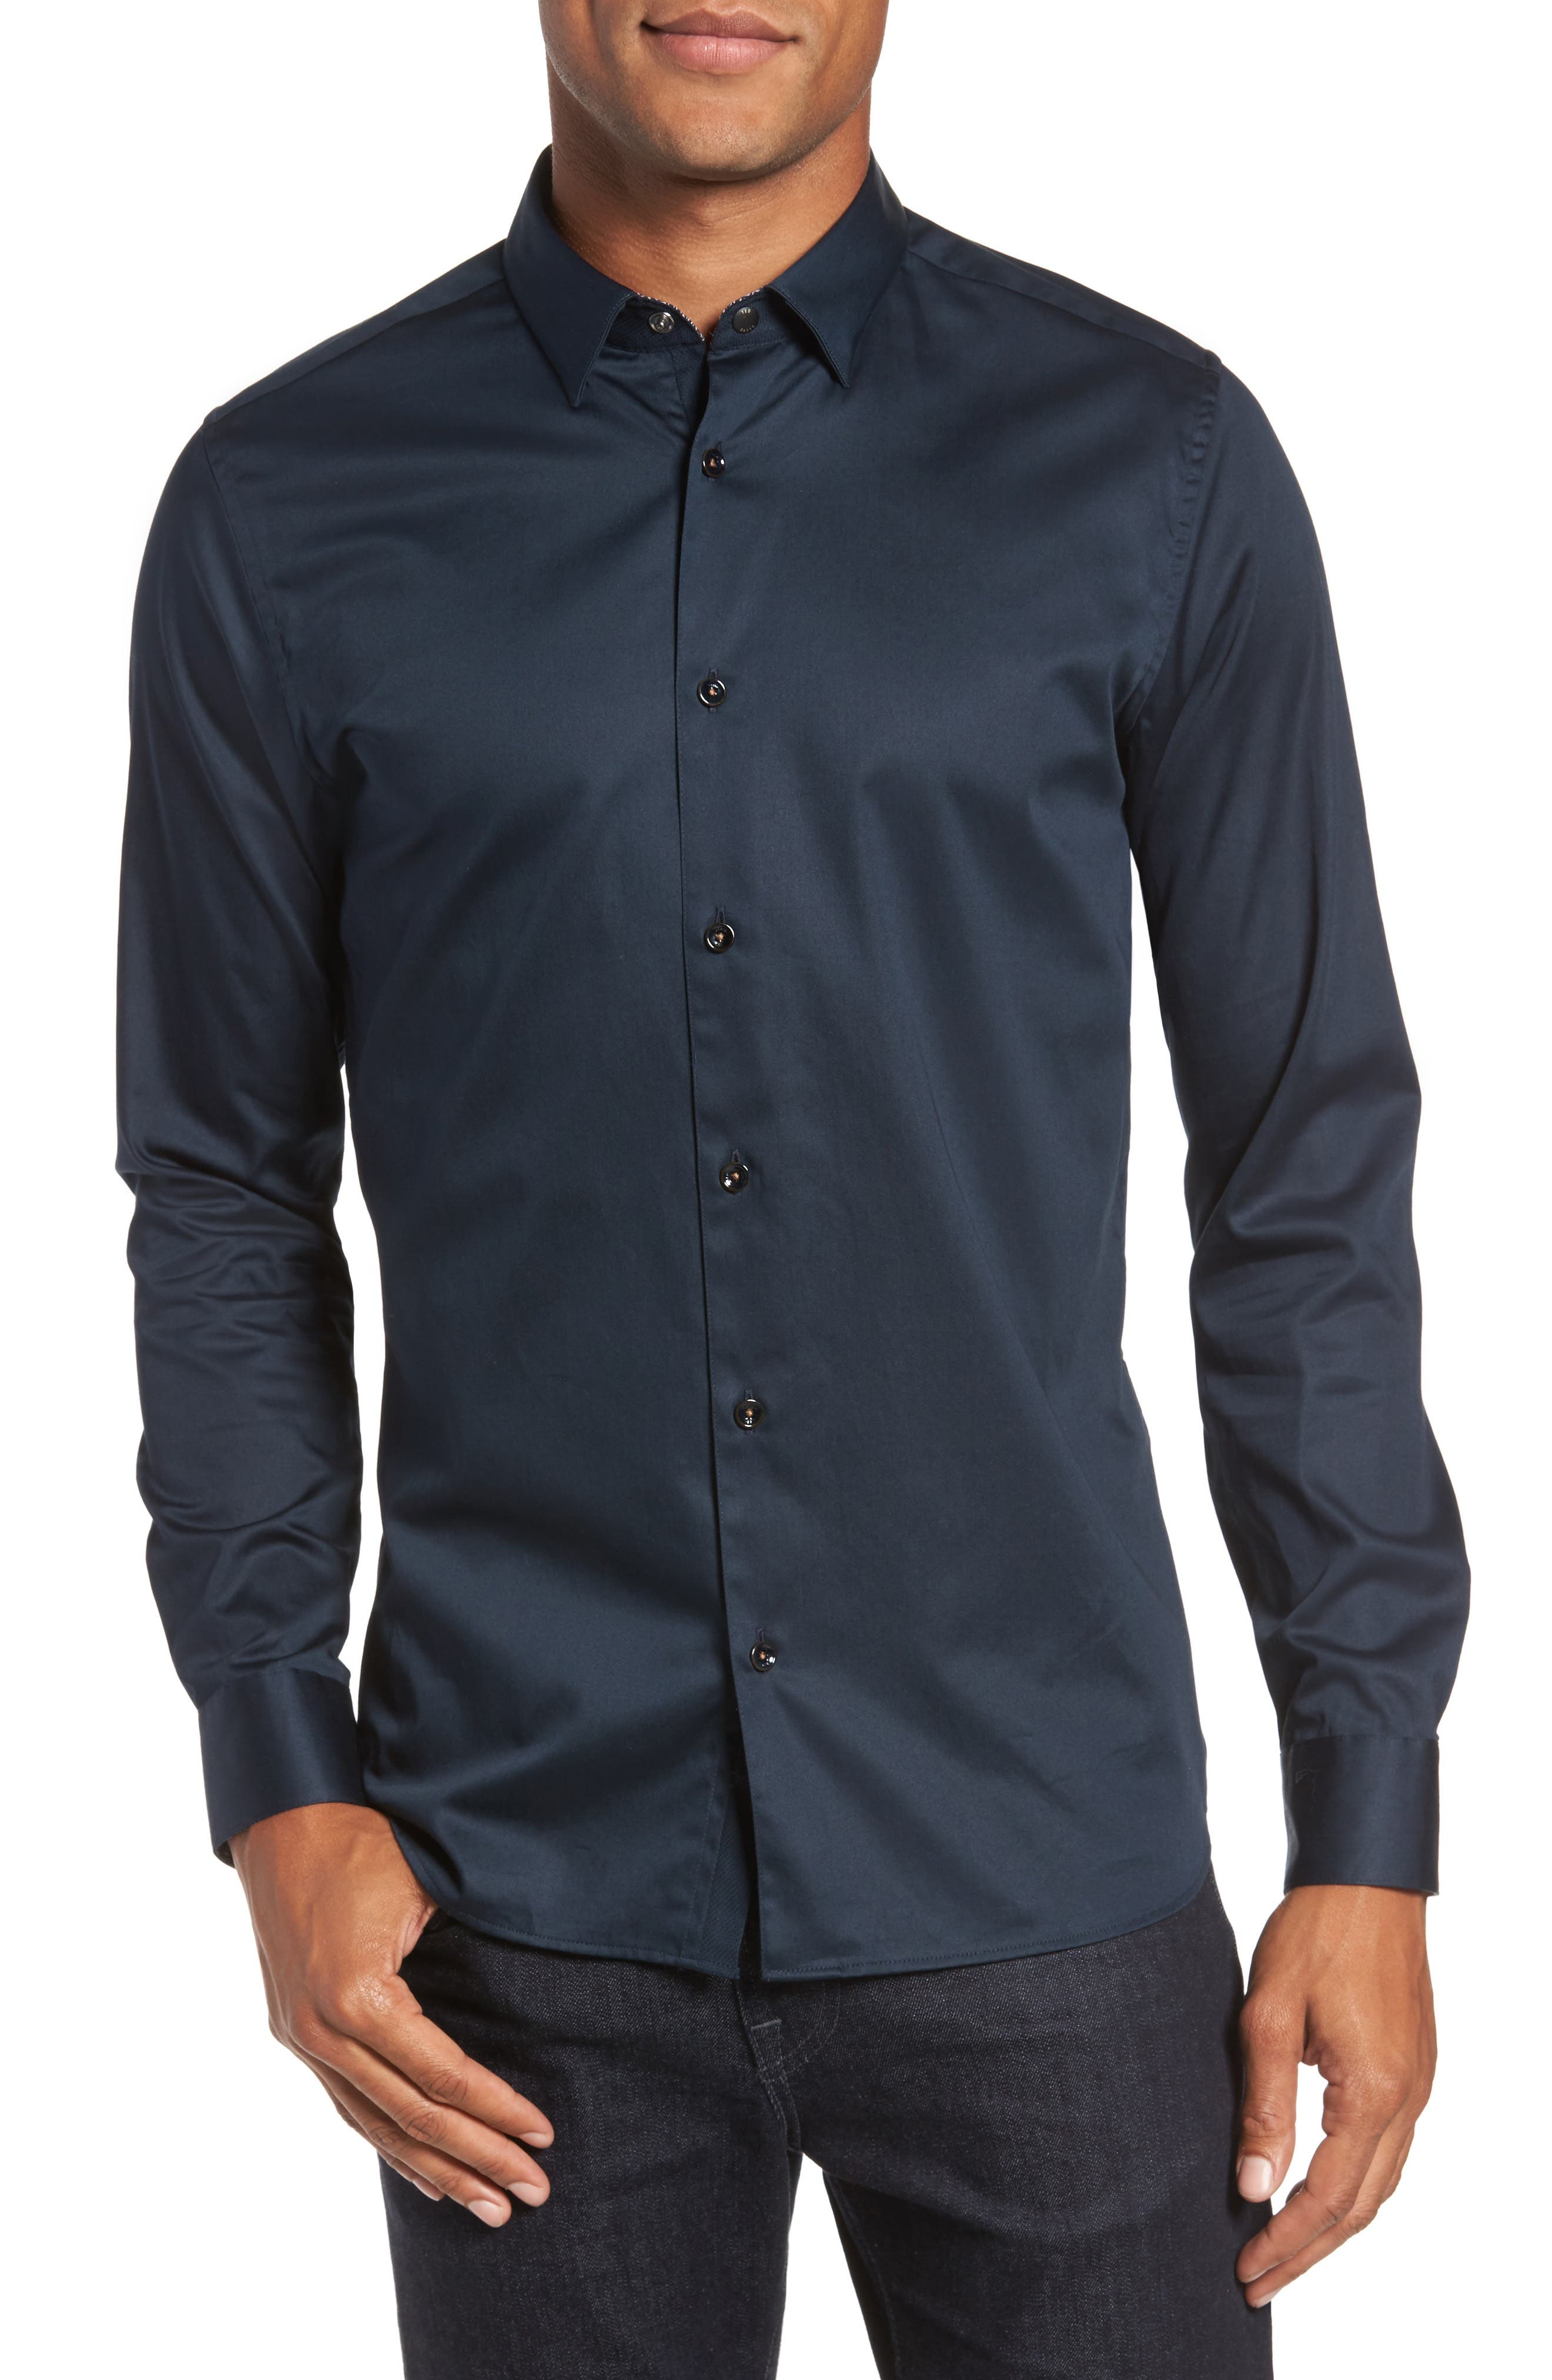 Marsay Modern Slim Fit Sport Shirt,                         Main,                         color, Navy